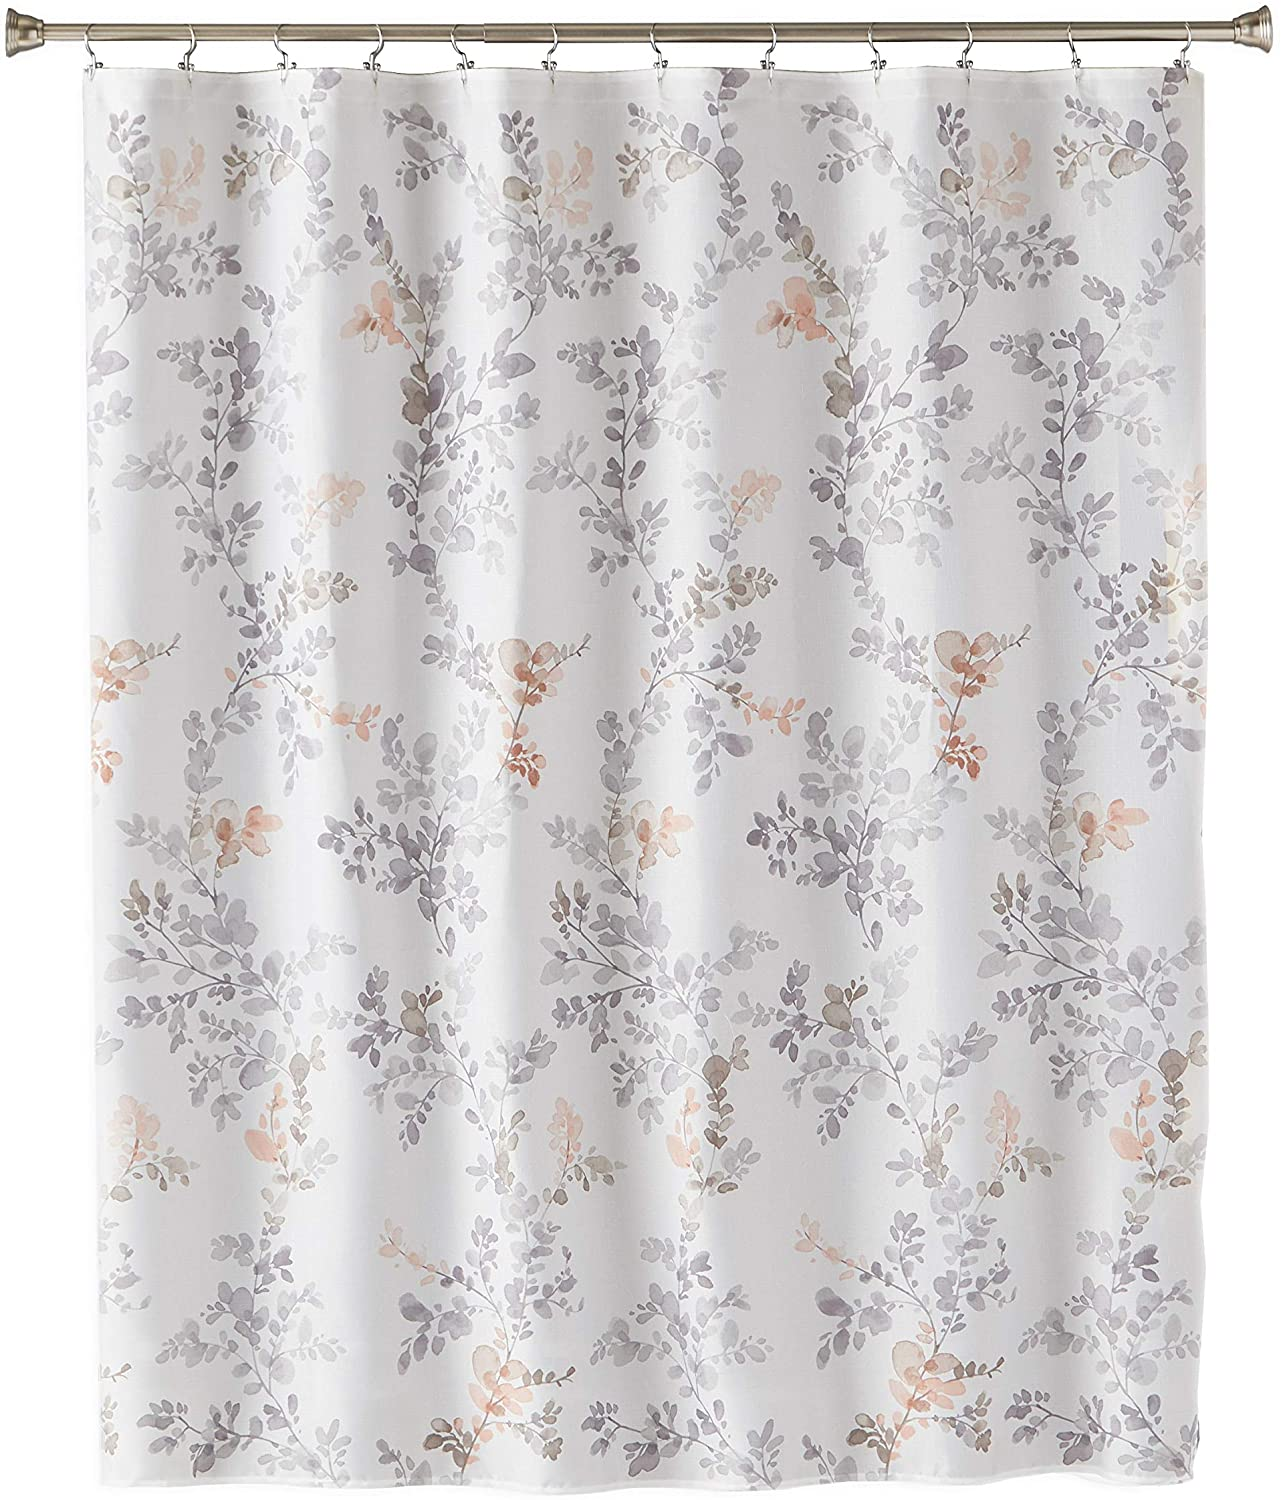 SKL Home by Saturday Knight Ltd. Greenhouse Leaves Fabric Shower Curtain, Multicolored